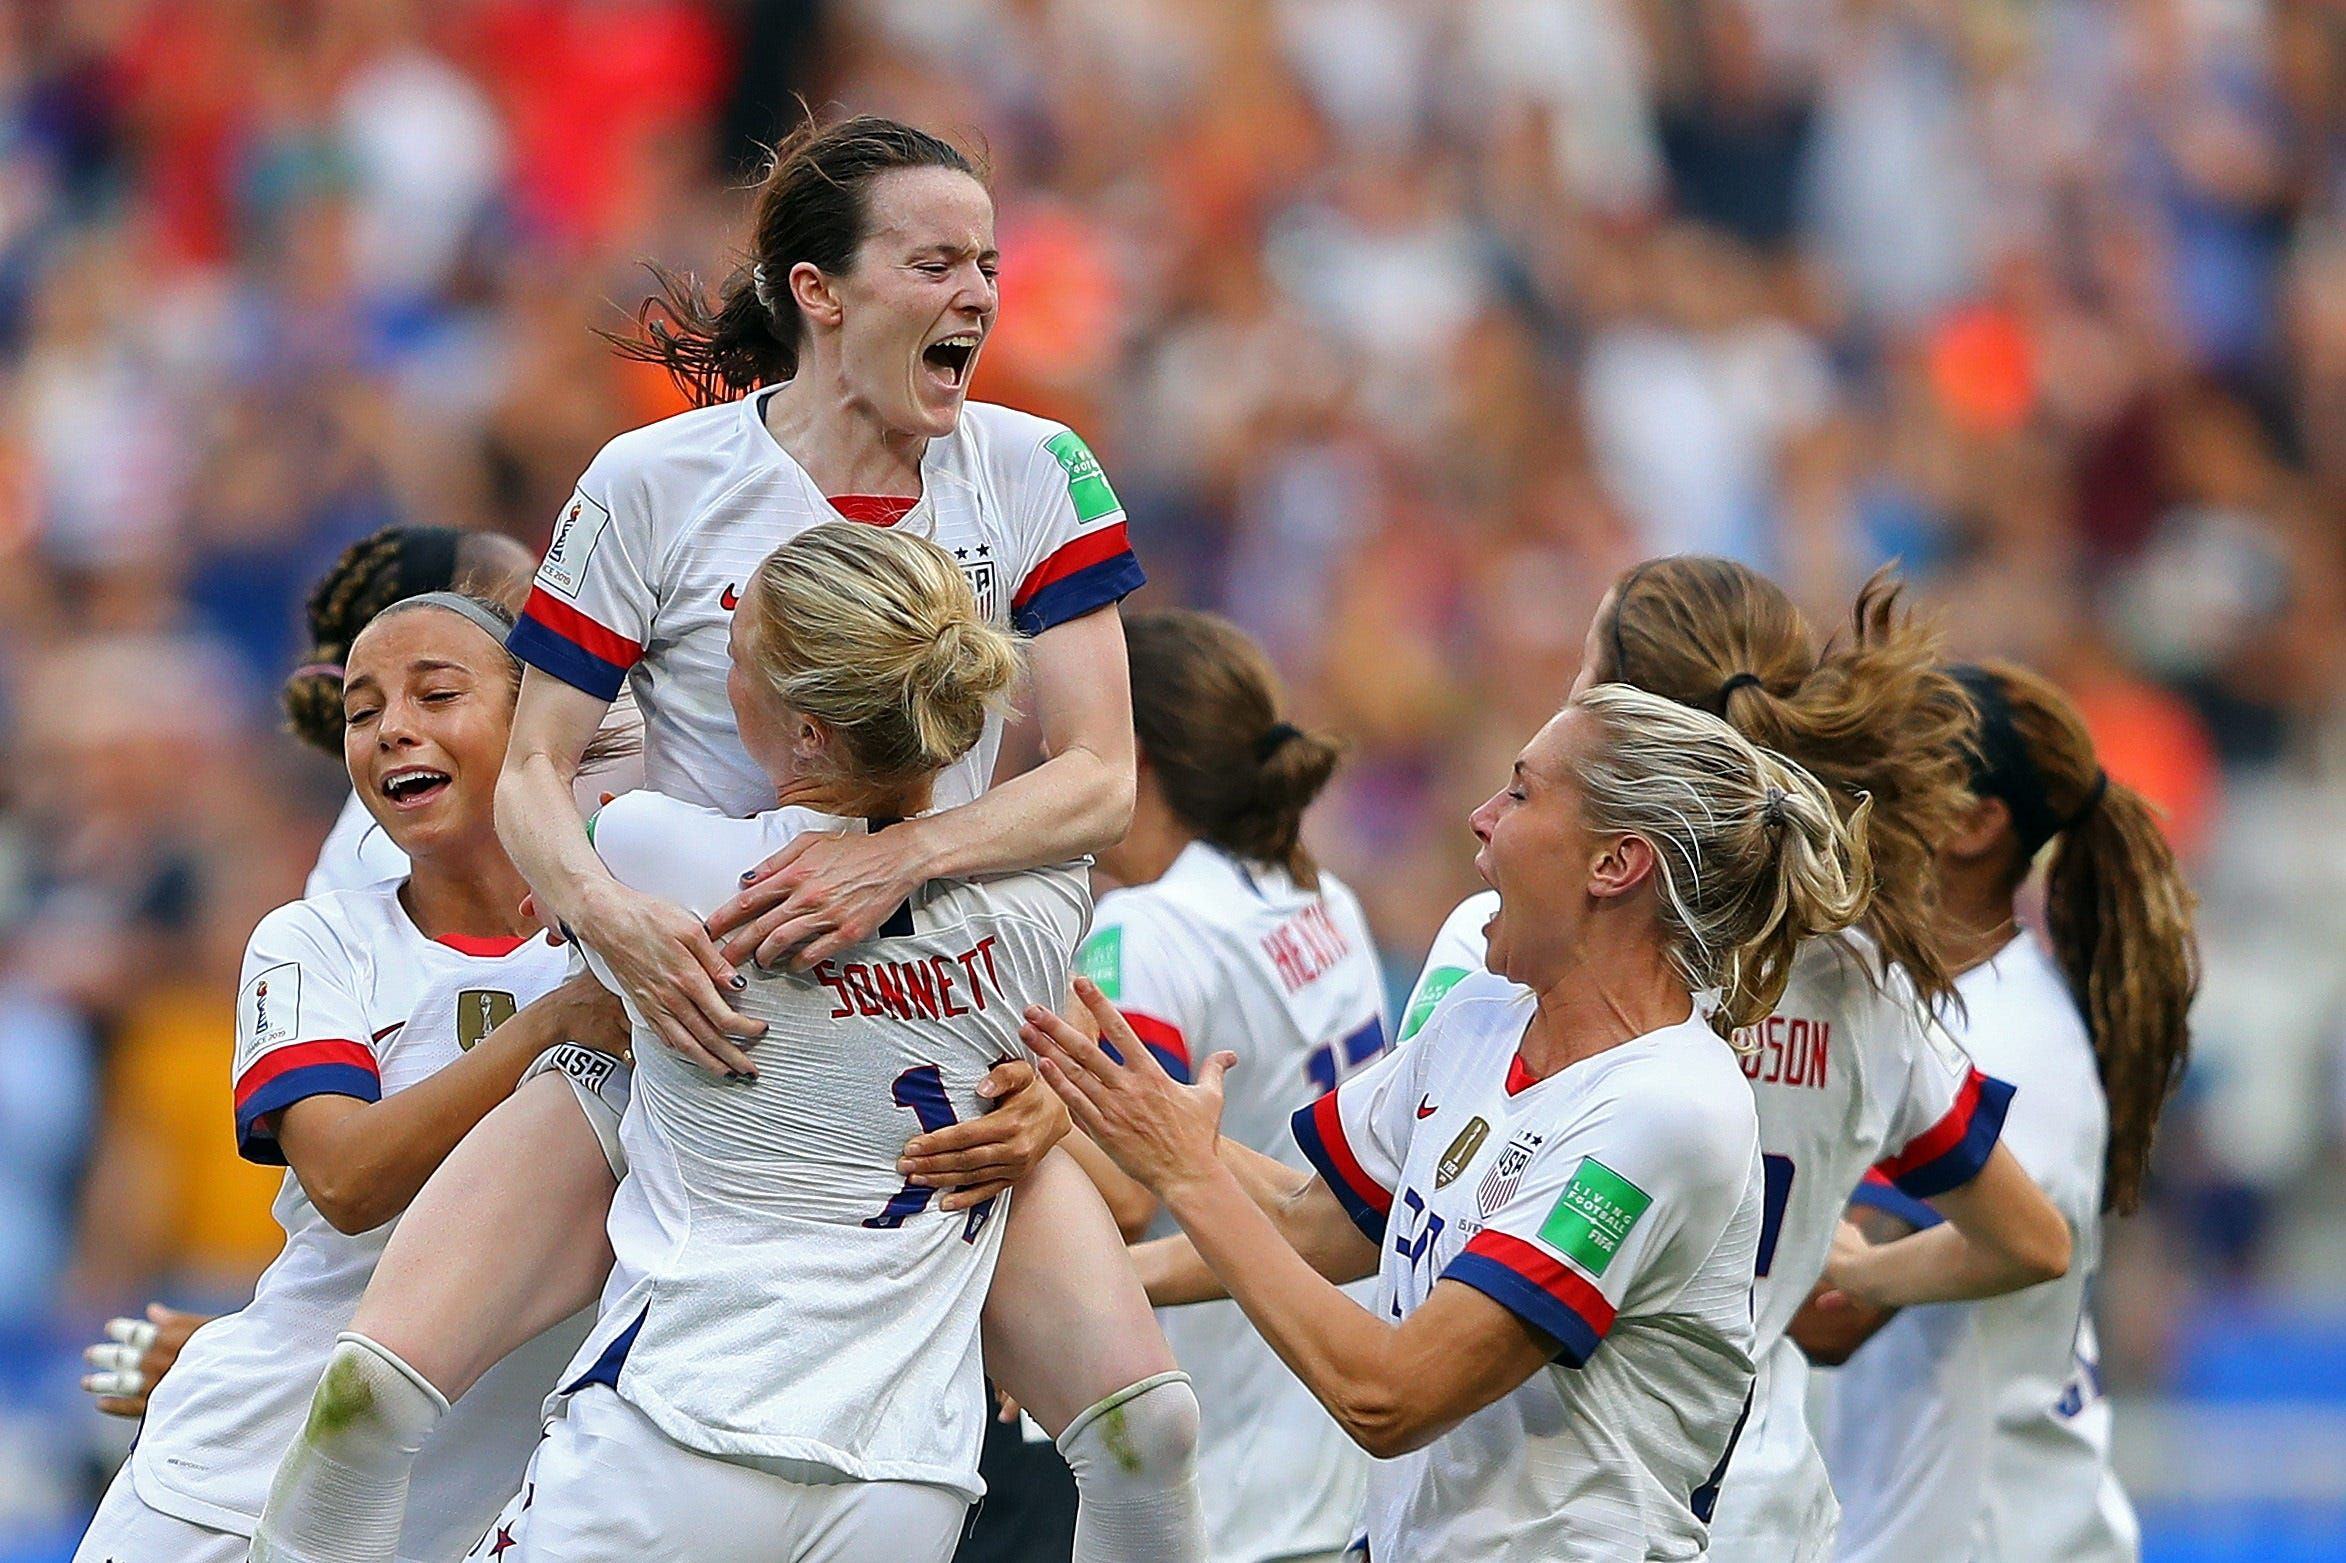 Us Women S Soccer Team Pay Gap Will Make You Gag What To Know About Its Lawsuit Soccer Drills For Kids Soccer Team Women S Soccer Team